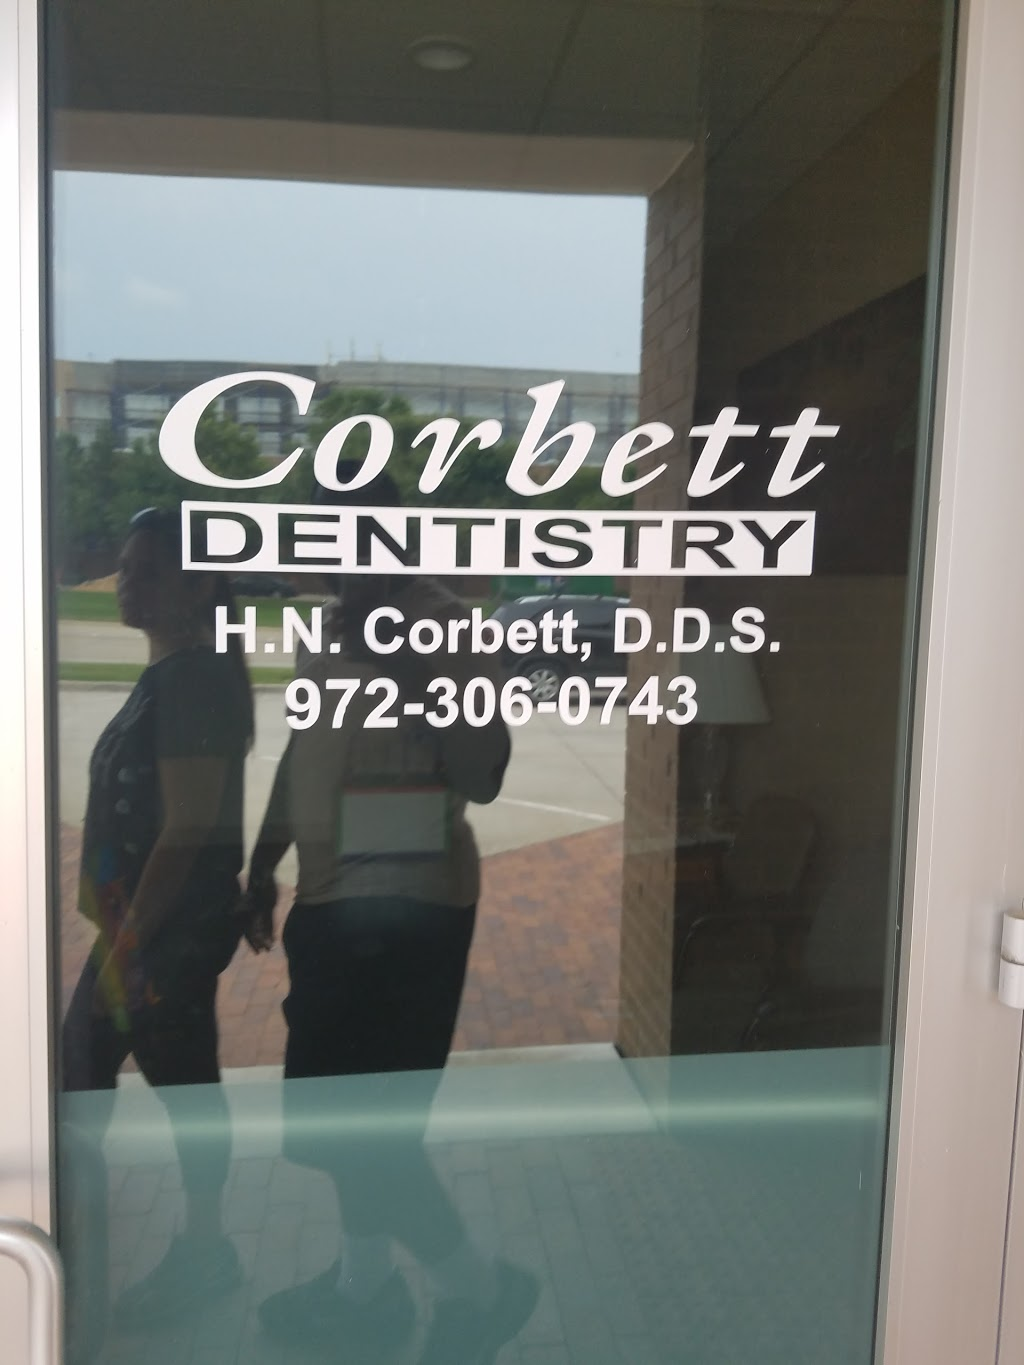 Corbett Dentistry - dentist    Photo 1 of 3   Address: 6800 Windhaven Pkwy #135, The Colony, TX 75056, USA   Phone: (972) 306-0743